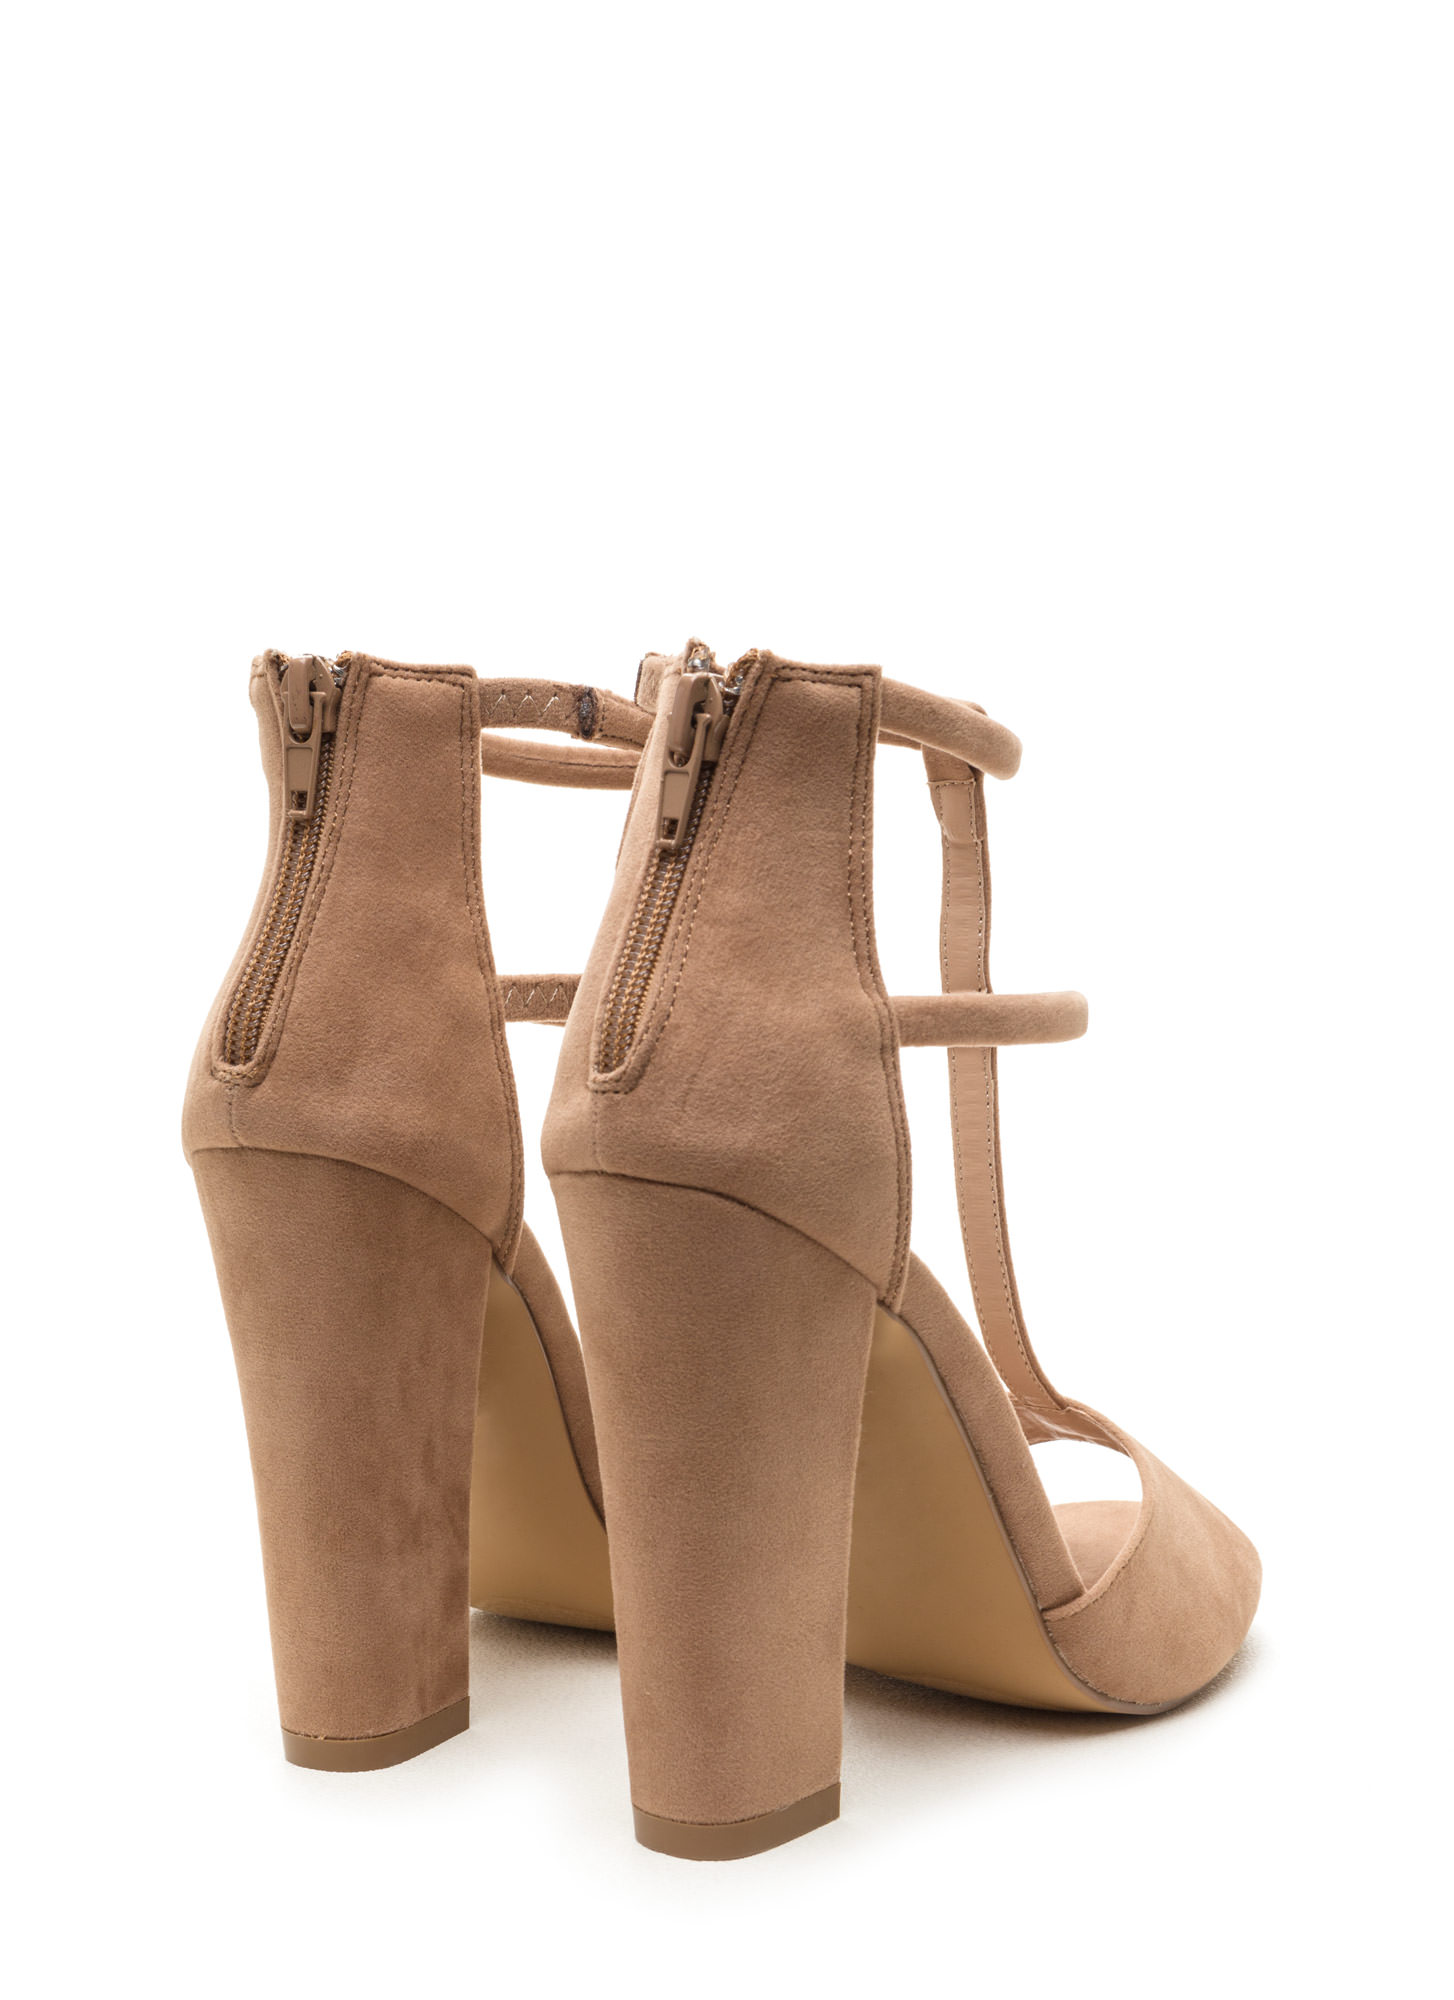 All Night Long Chunky Caged Heels TAUPE